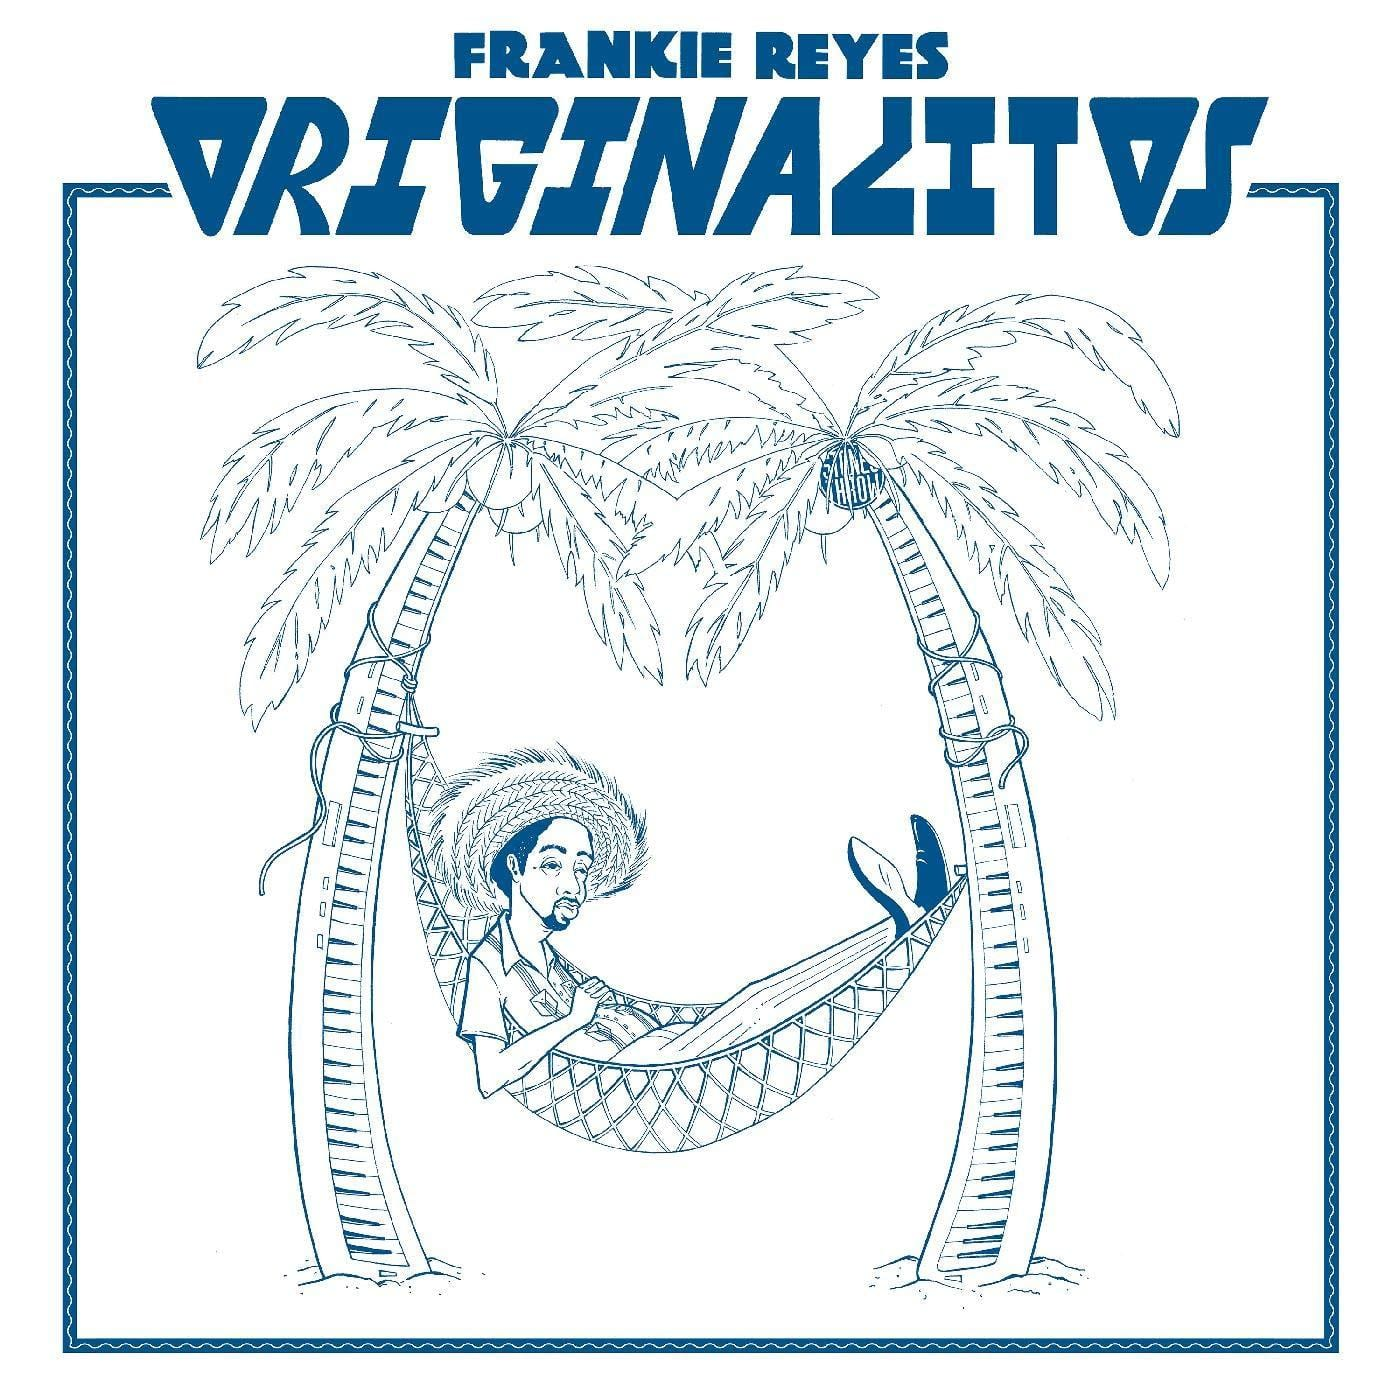 Frankie Reyes - Originalitos [LP] - Urban Vinyl | Records, Headphones, and more.